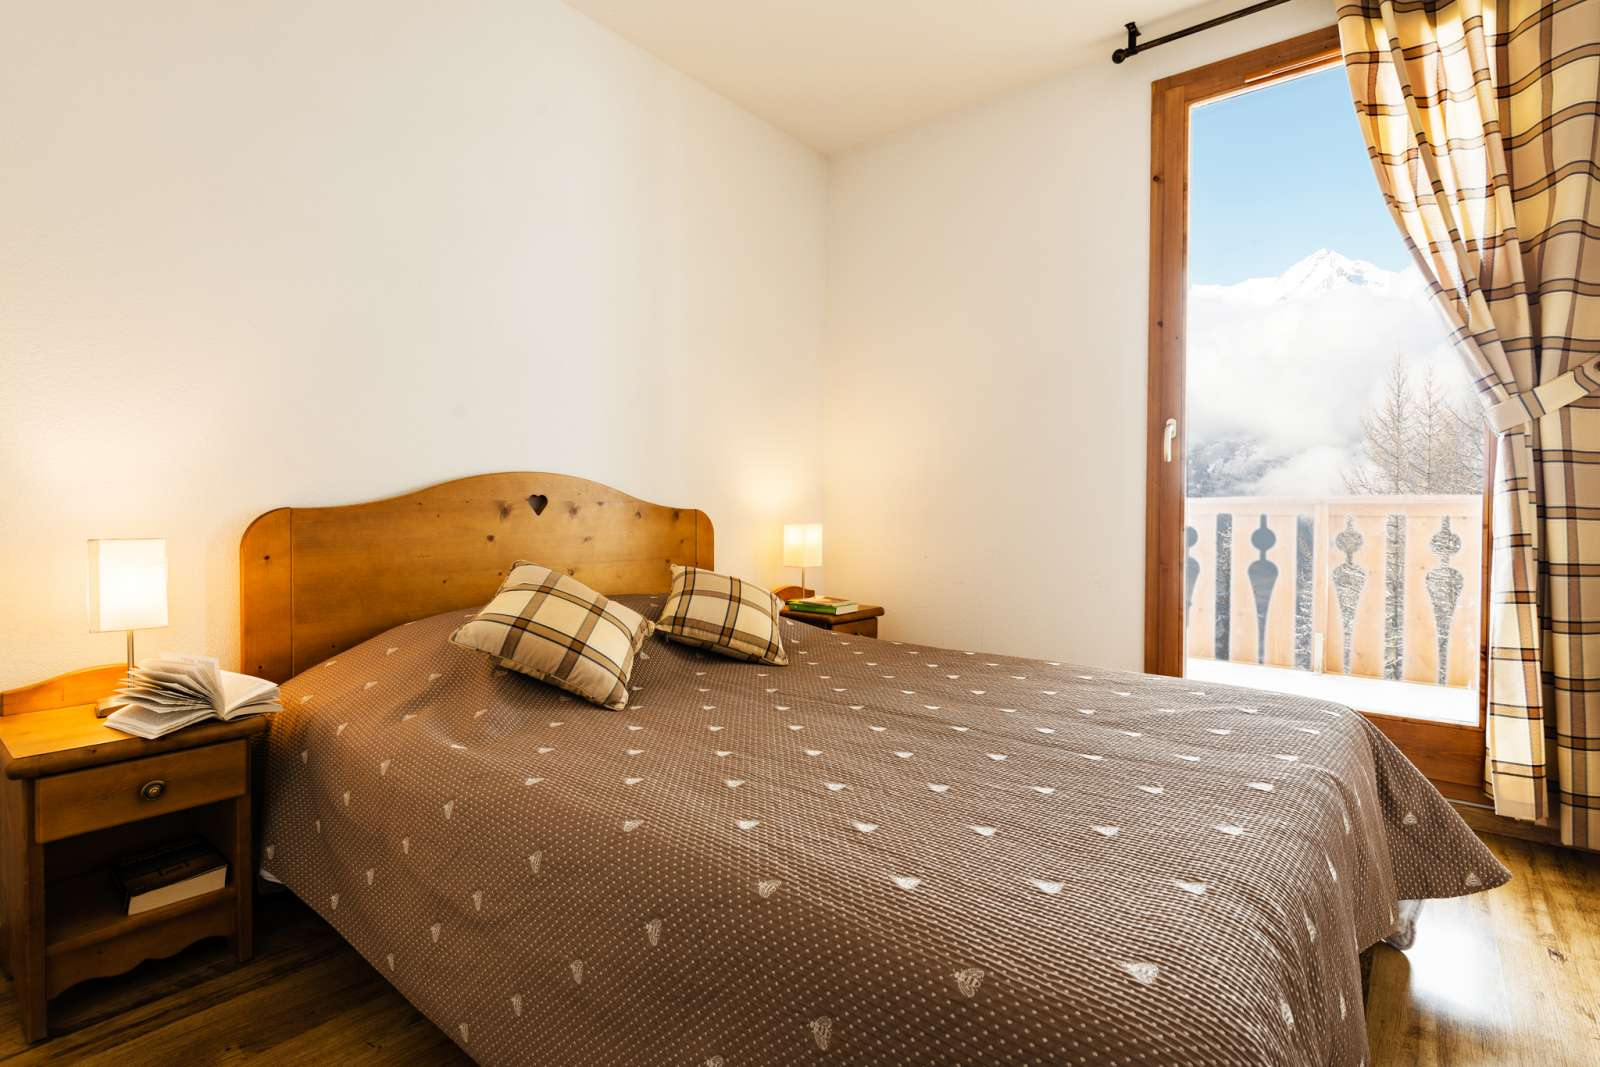 Arollaie, Peisey Vallandry (self catered apartments) - Double bedroom with balcony